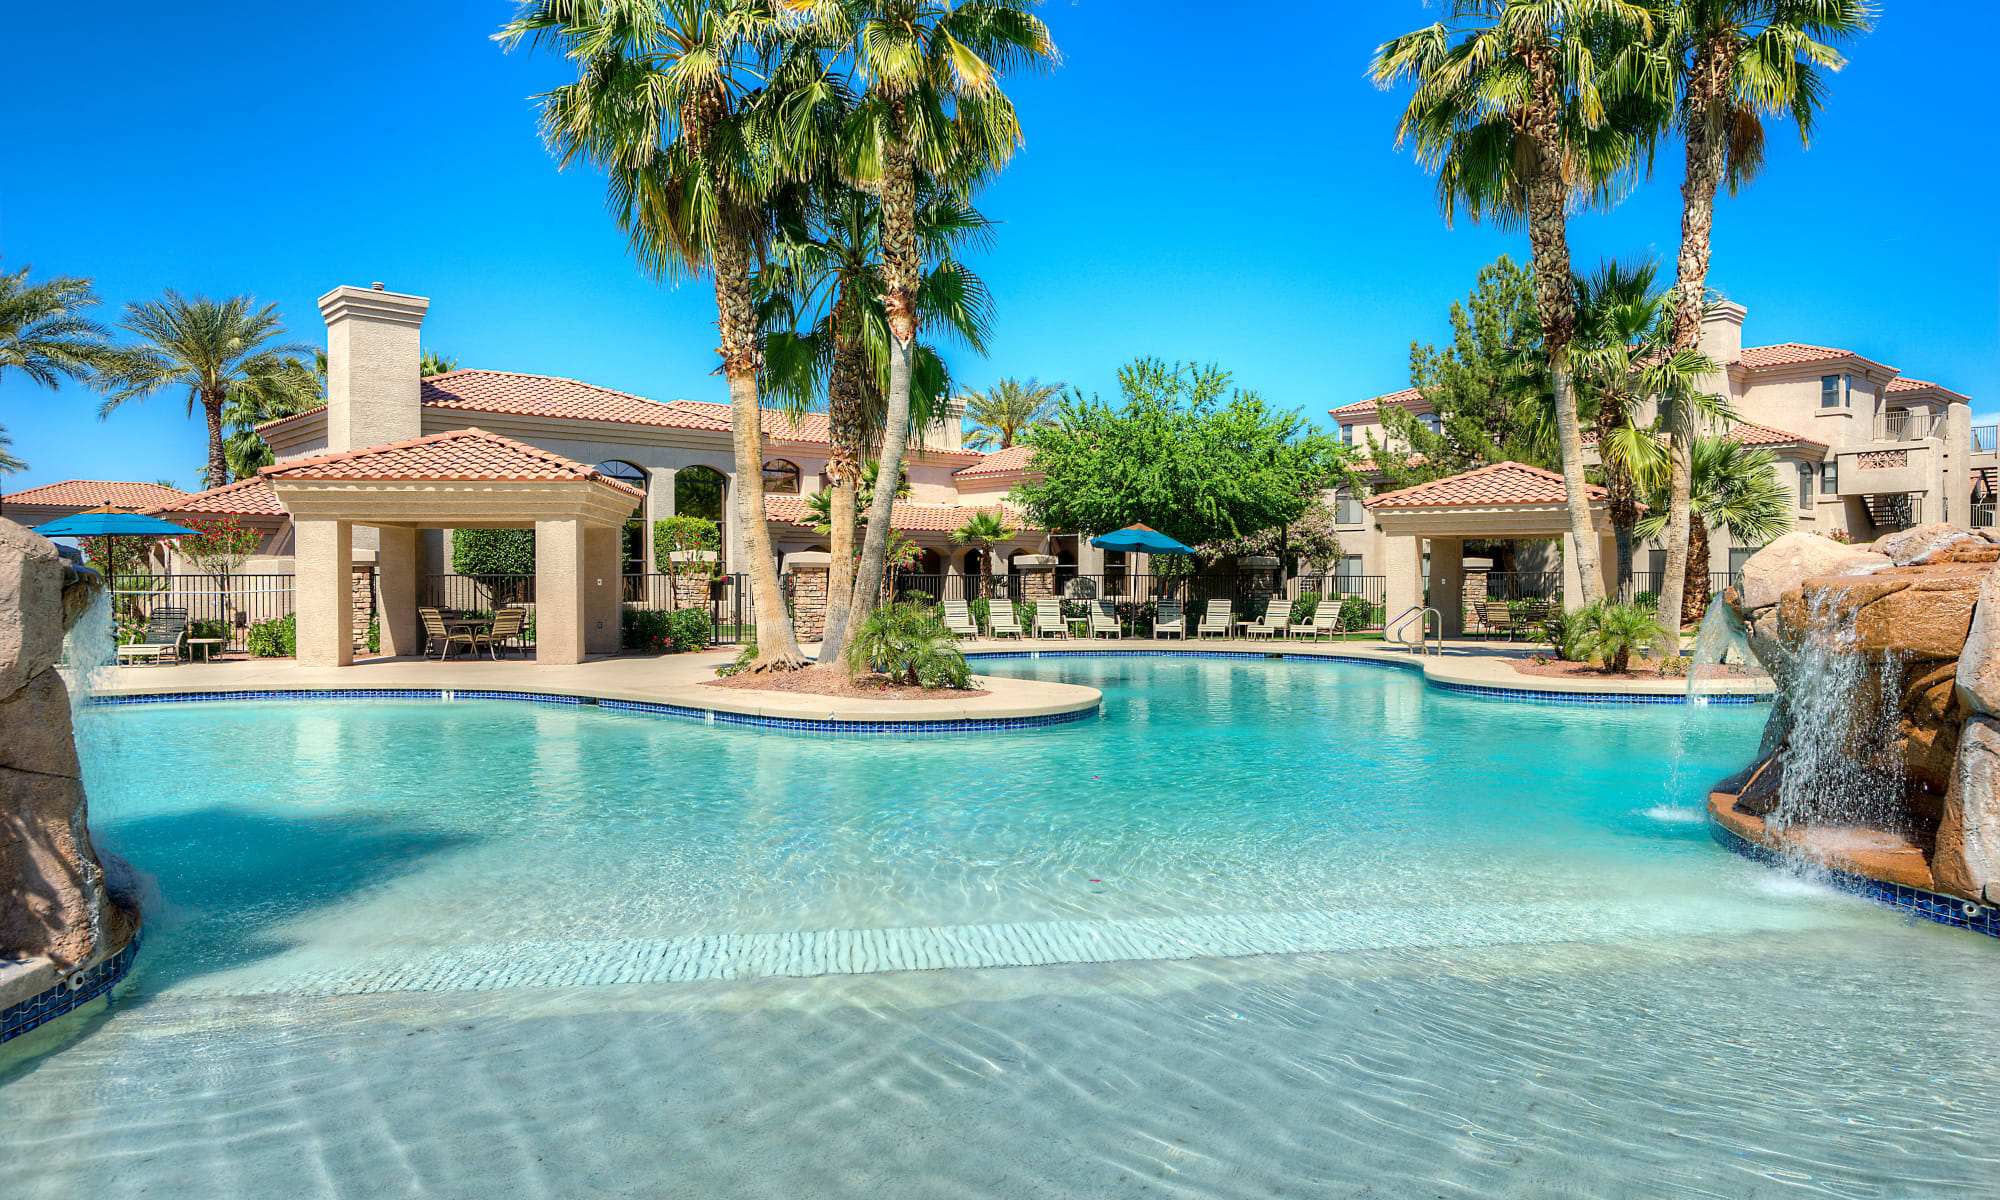 San Pedregal apartments in Phoenix, Arizona